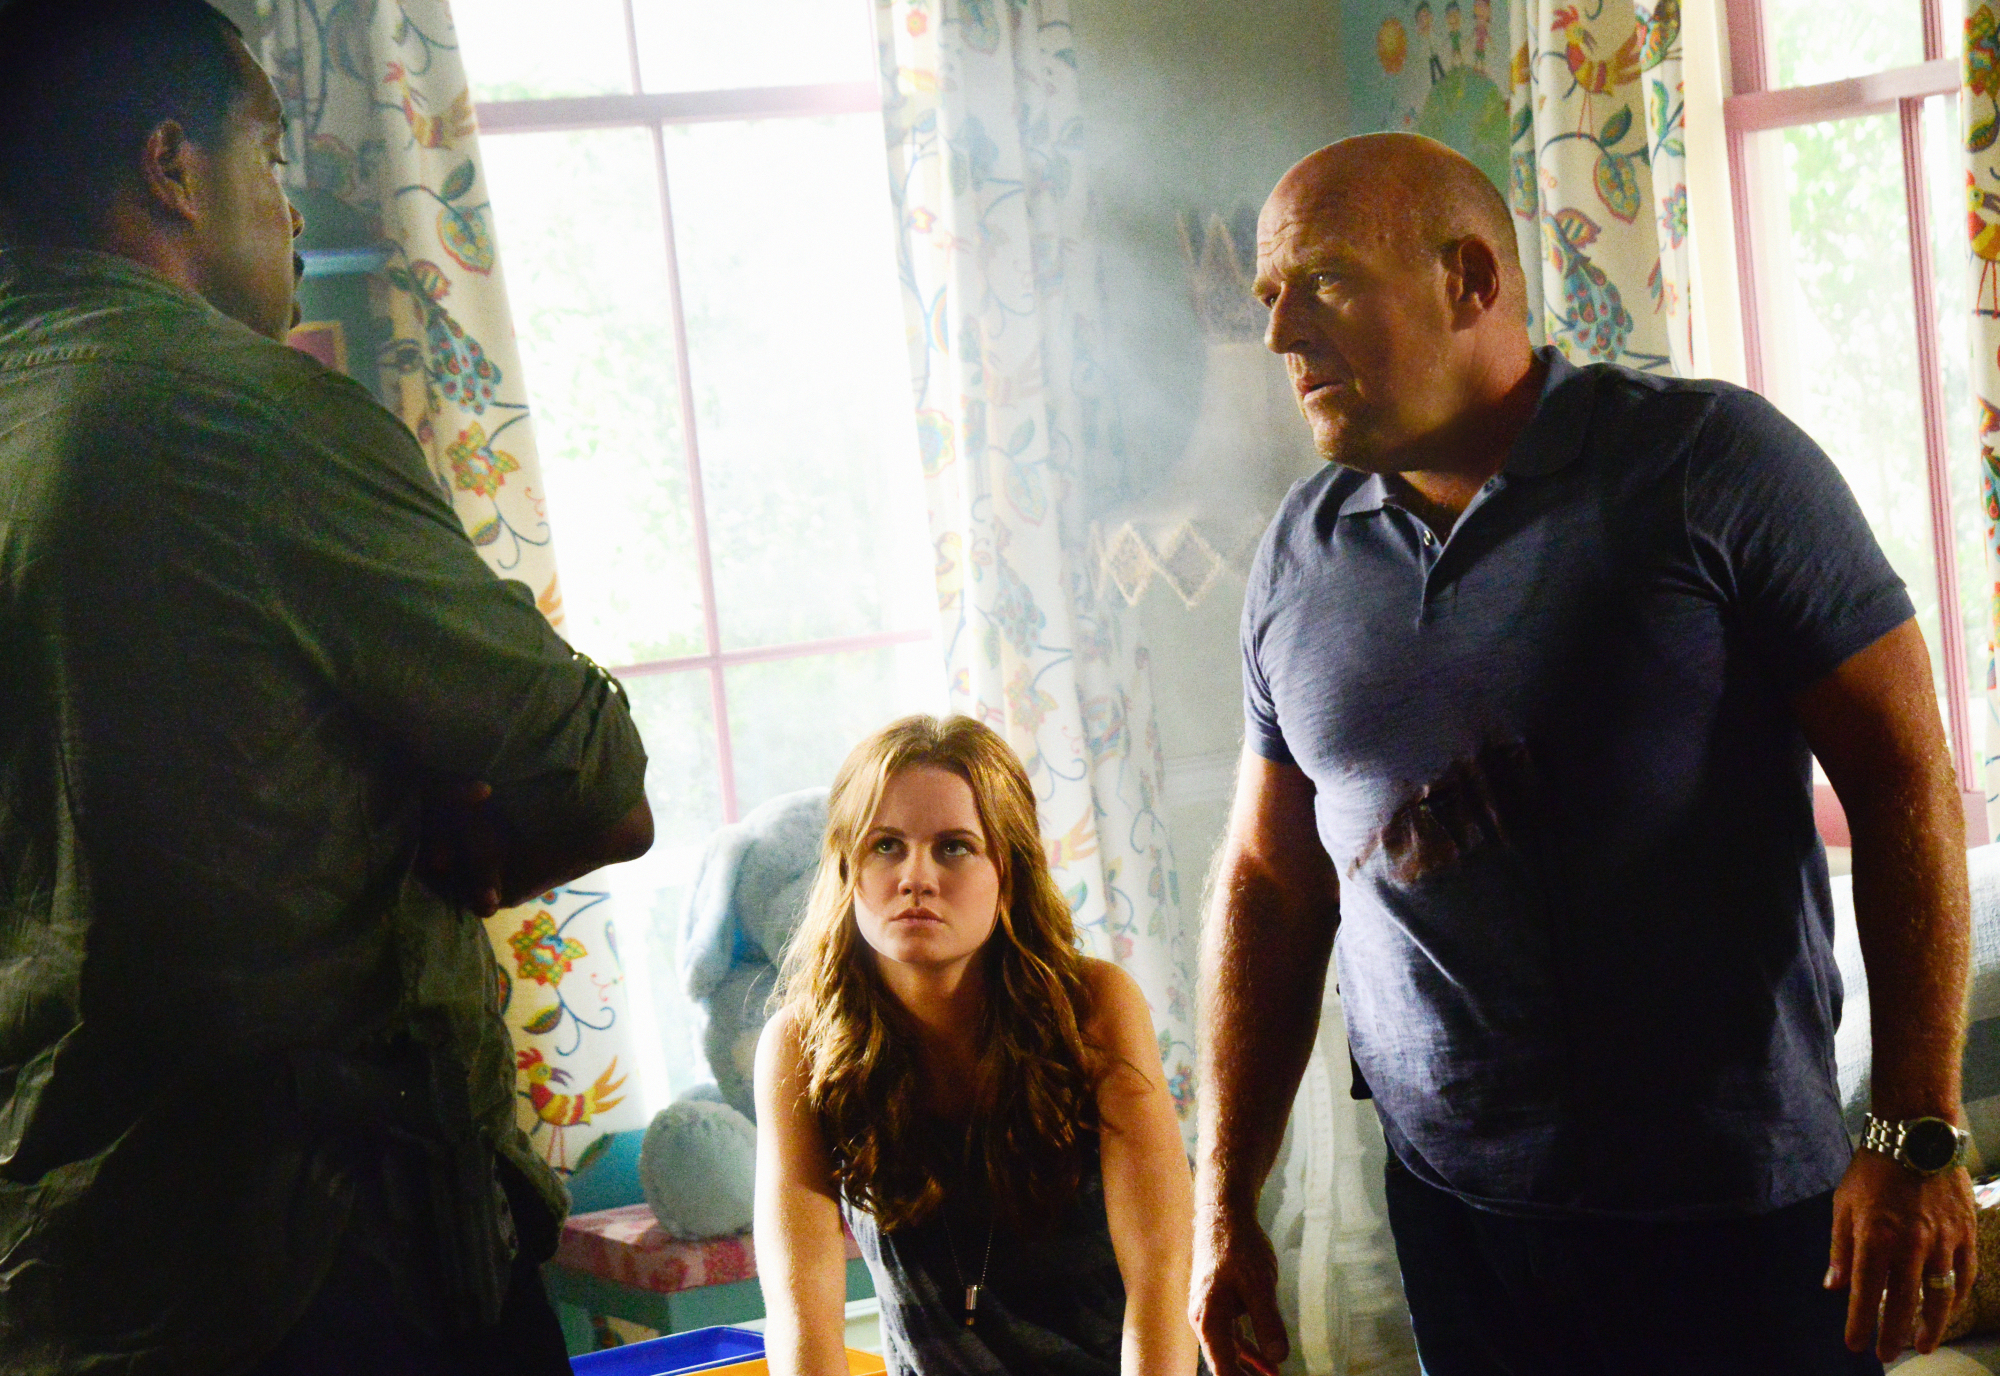 Eriq La Salle as Hektor Martin, Mackenzie Lintz as Norrie Calvert-Hill, and Dean Norris as James